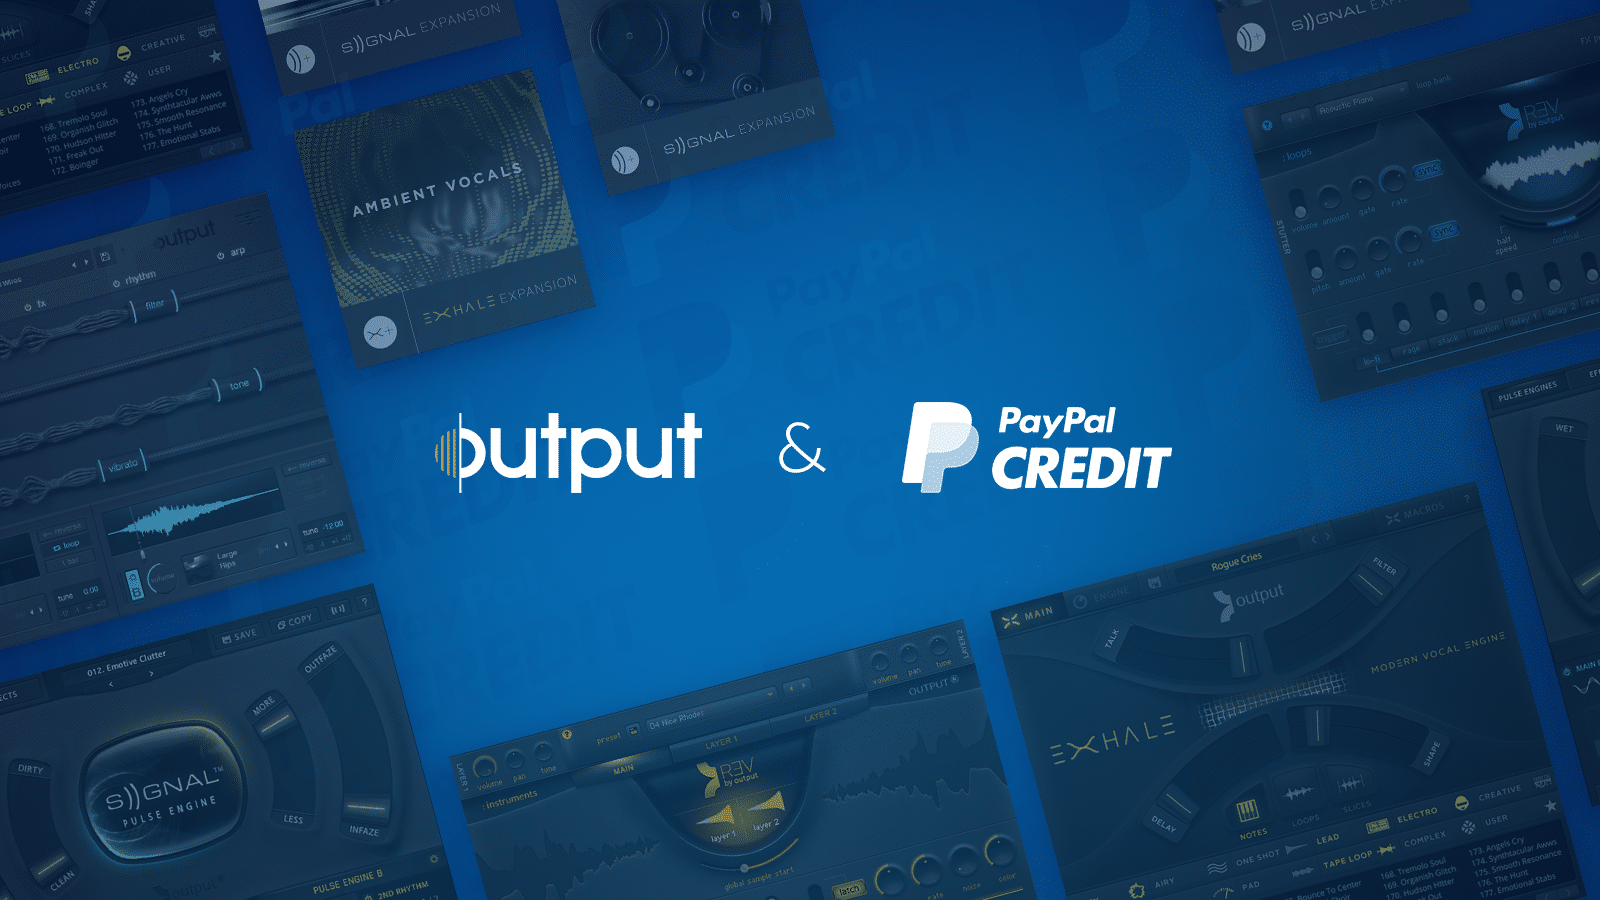 Output & PayPal Credit How-To